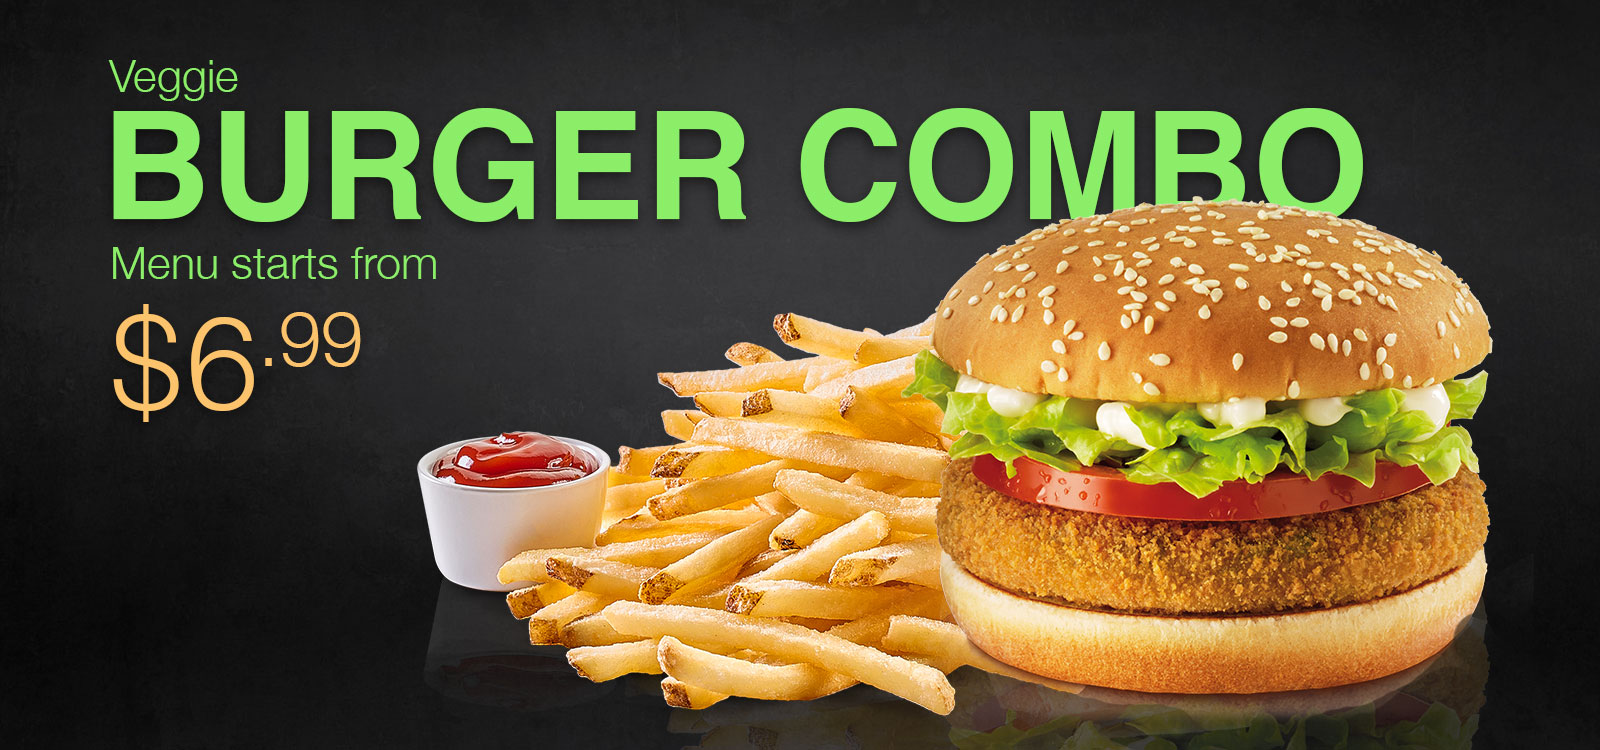 Veggie Planet Deal: Veggie Burger combo deal starting from $5.99